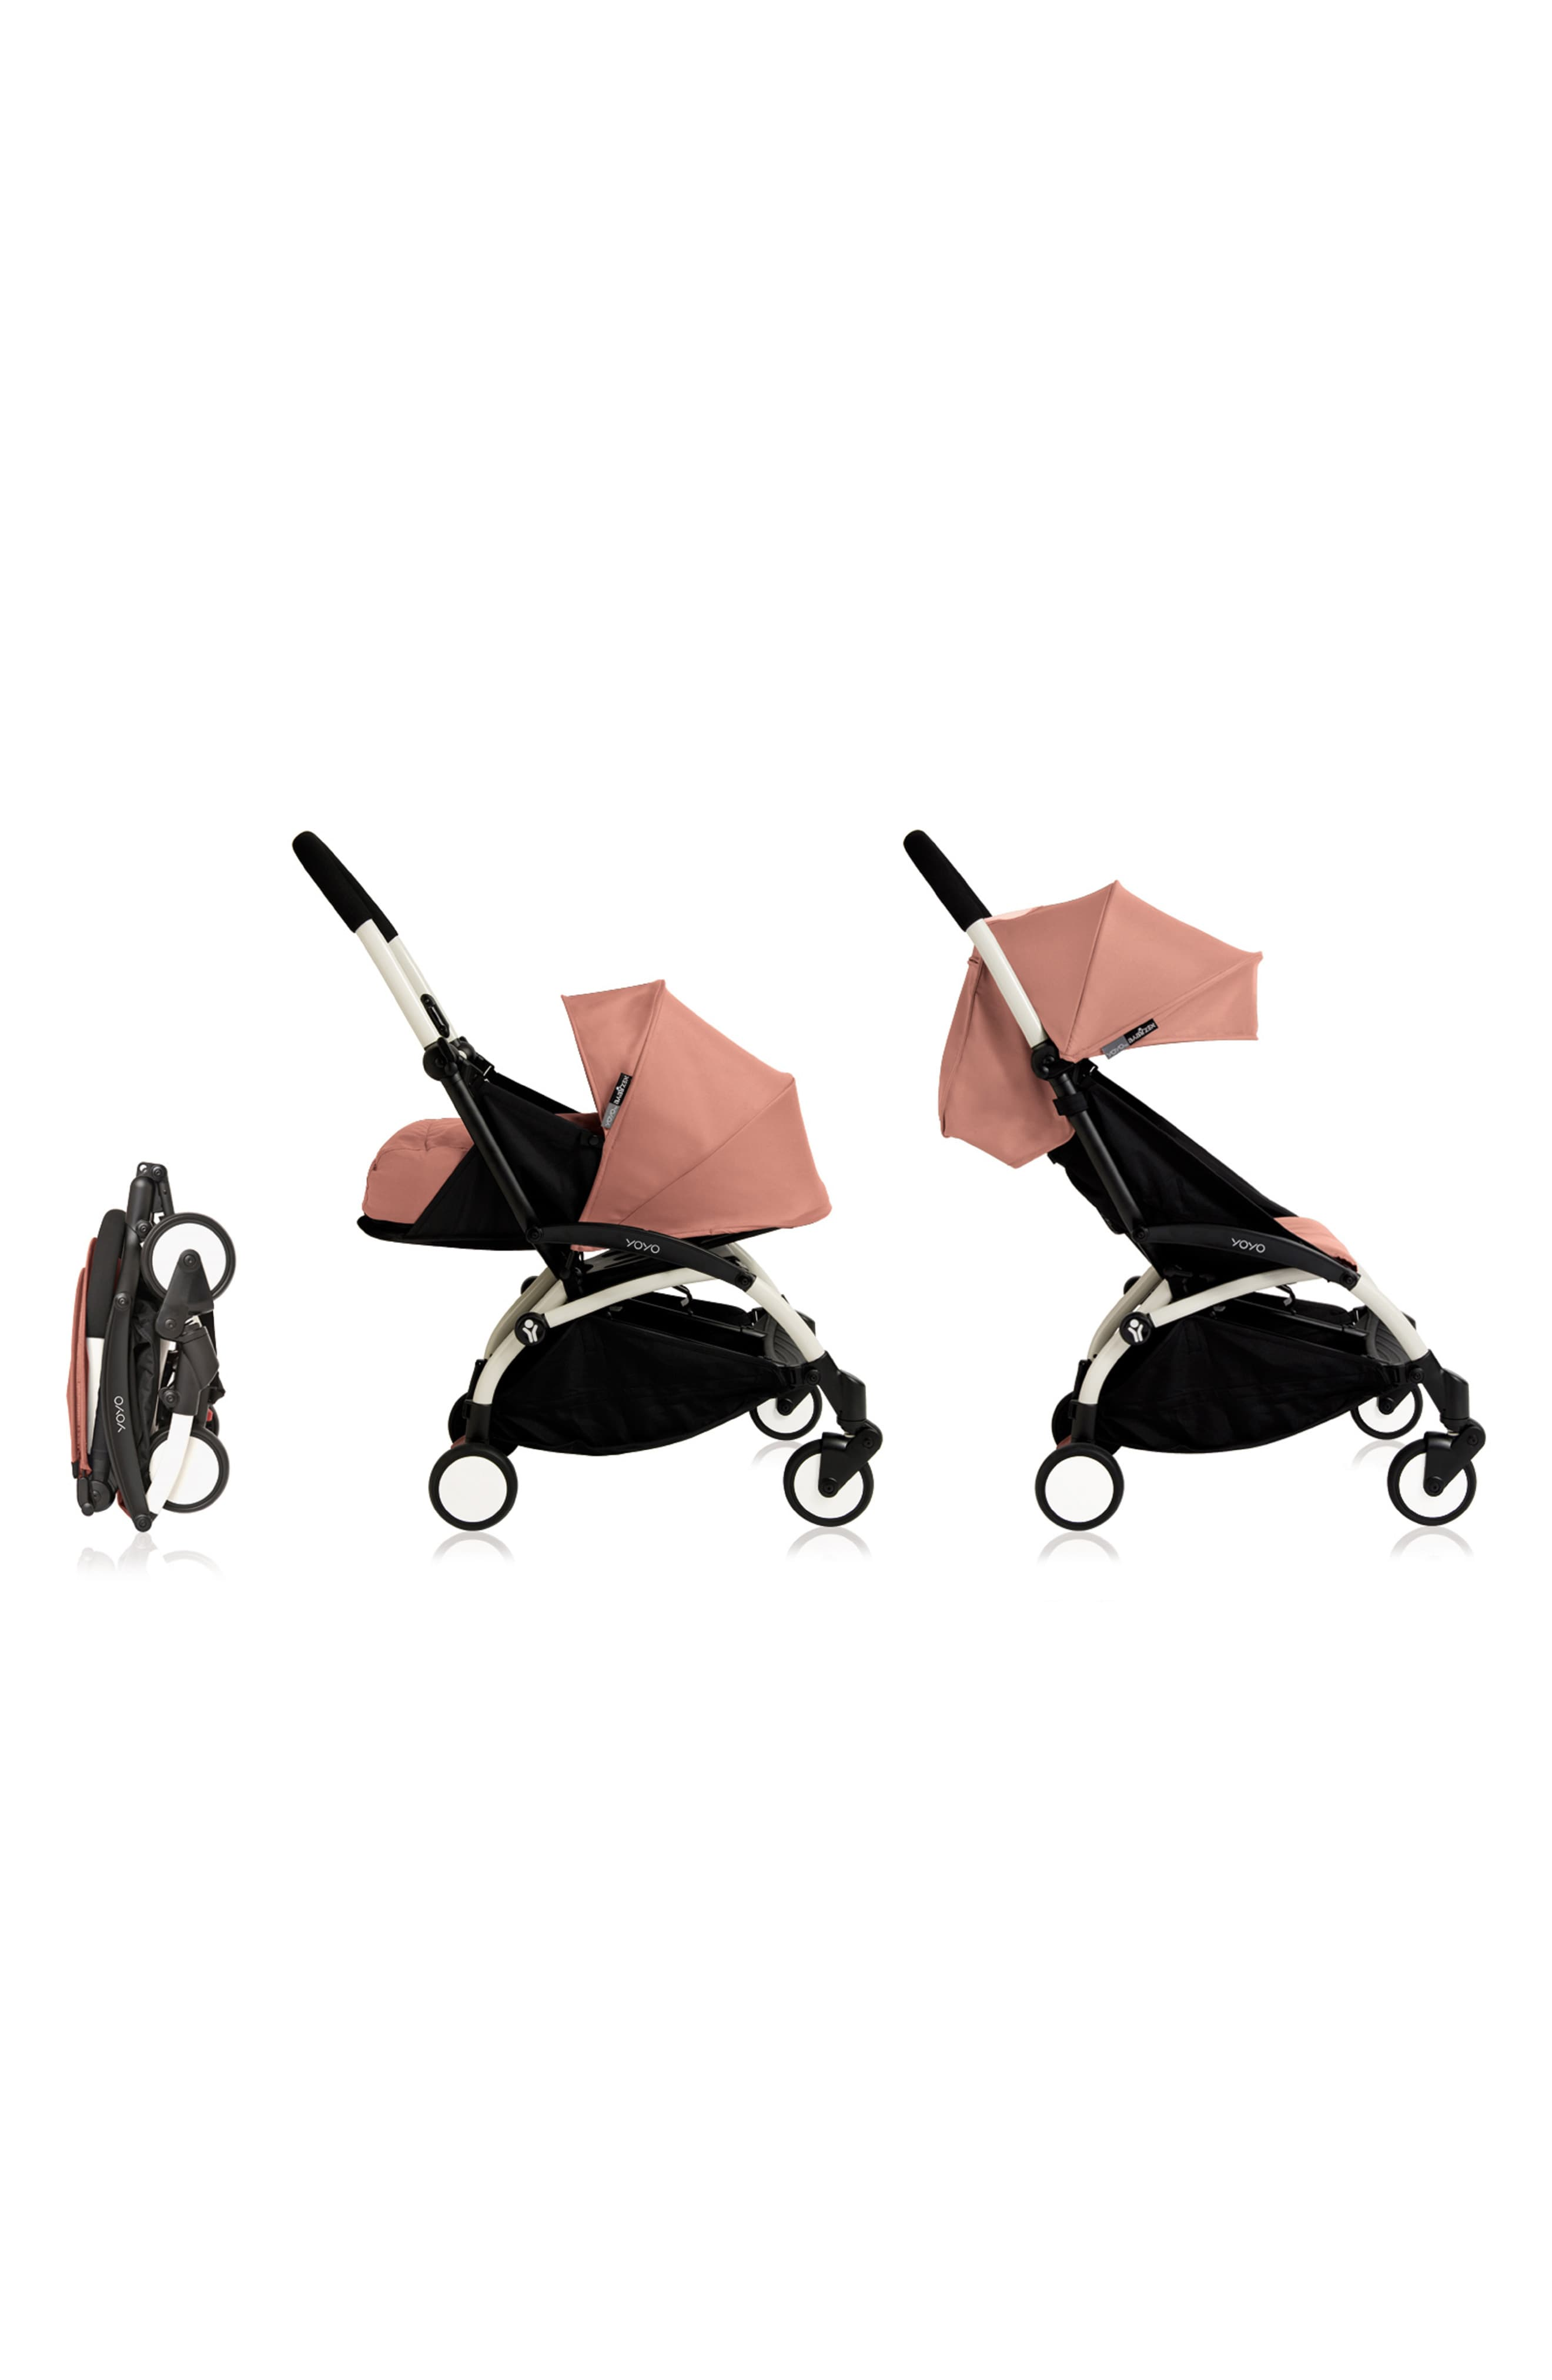 Infant Babyzen Yoyo+ Complete Stroller With Newborn Nest